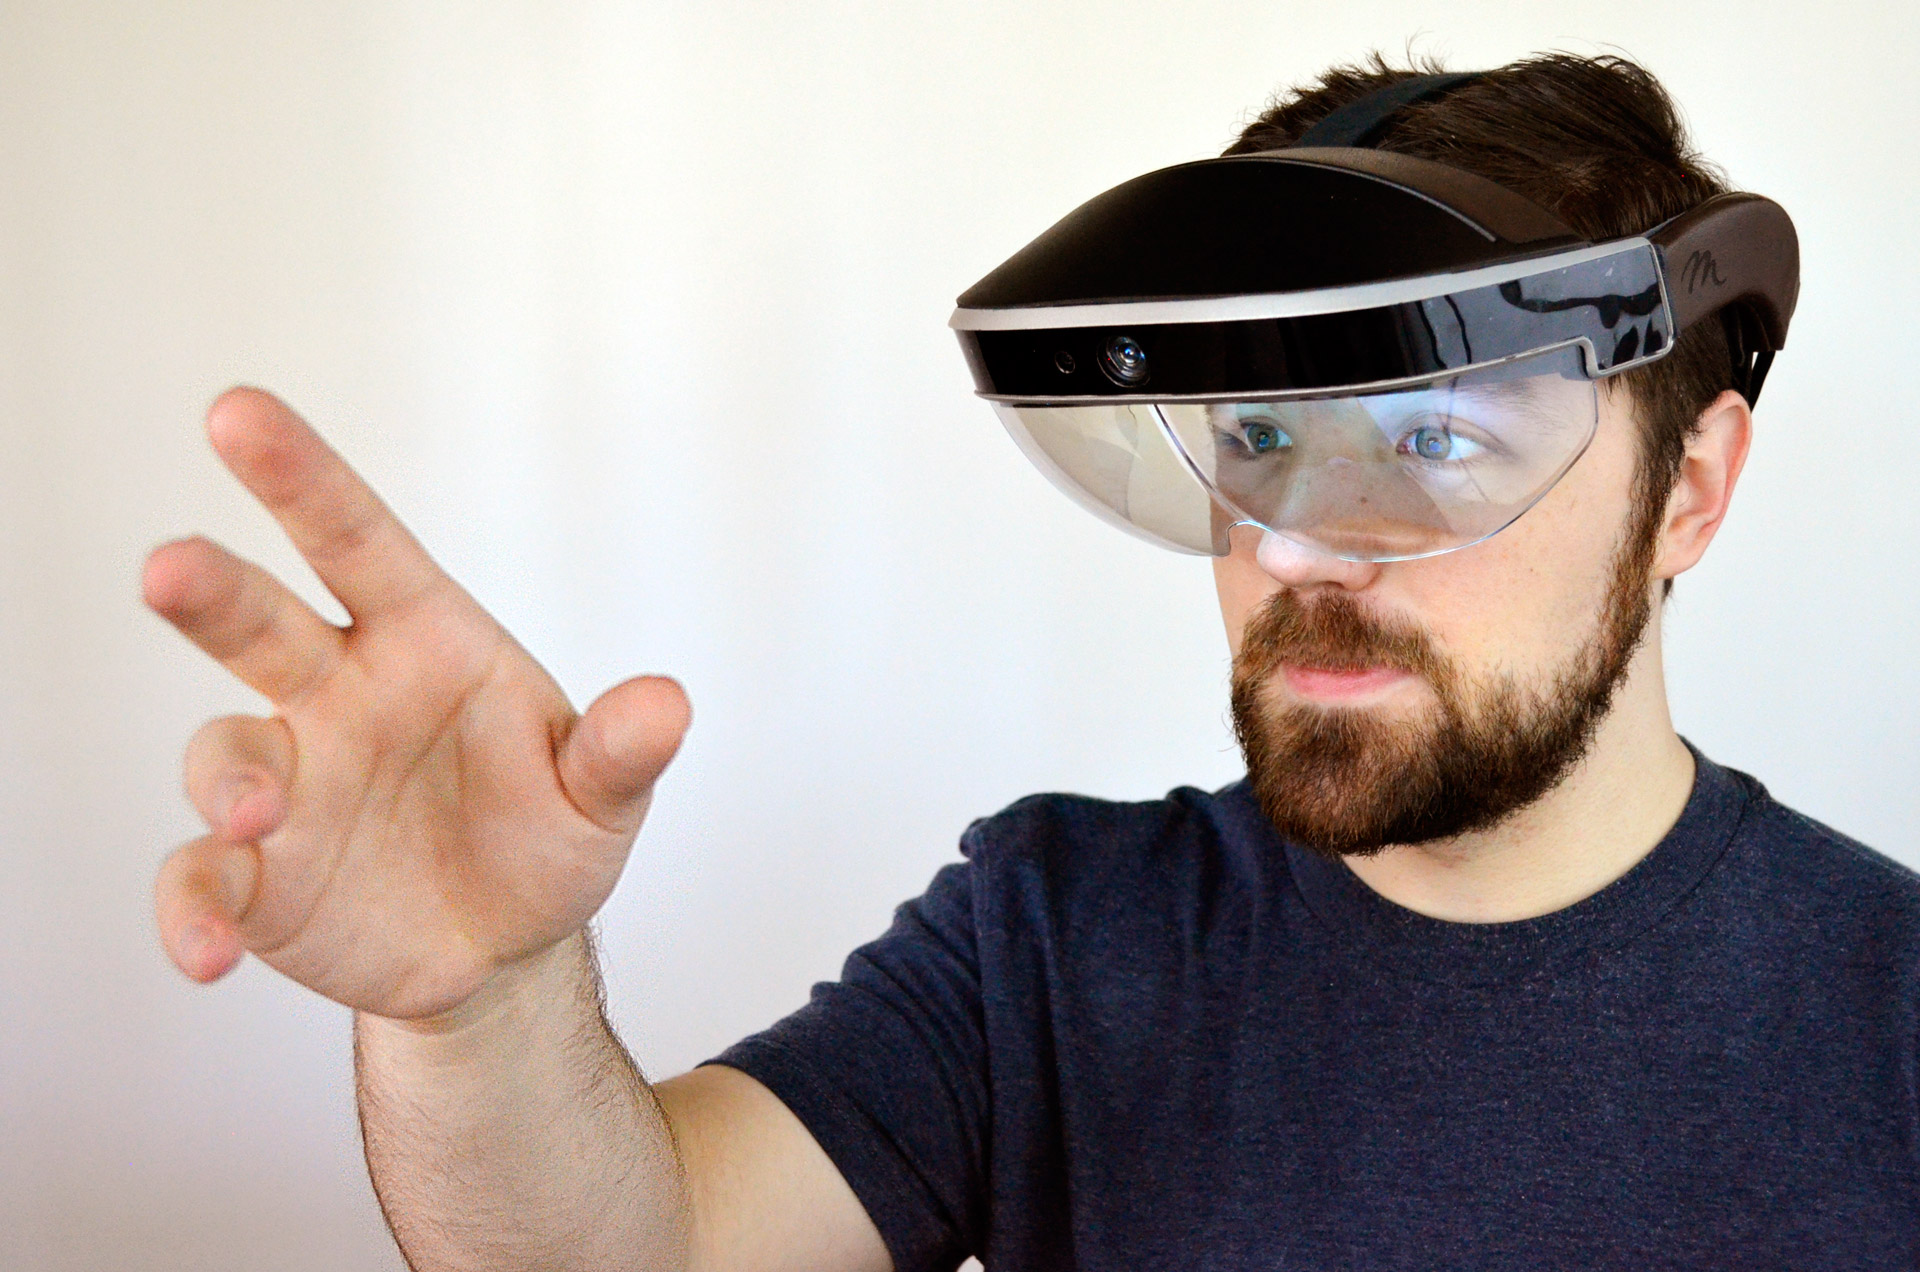 Meta Unveils New Augmented Reality Development Kit